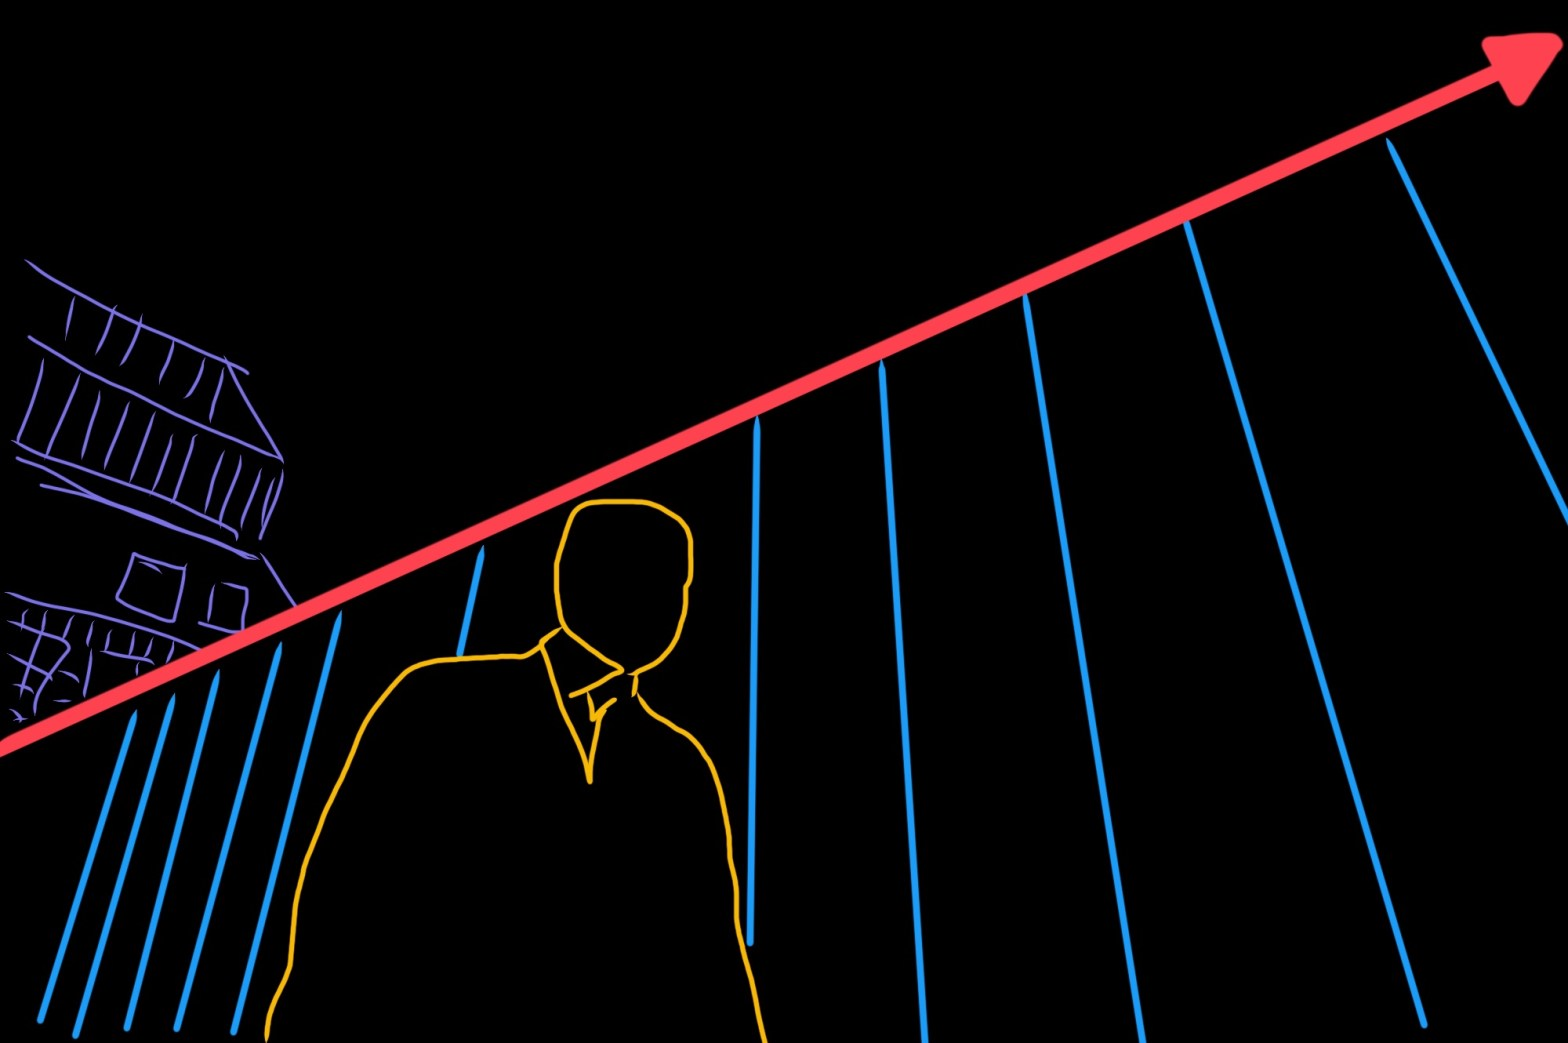 Abstract image, outlining the man (yellow), the background (blue) and the leading line (red)